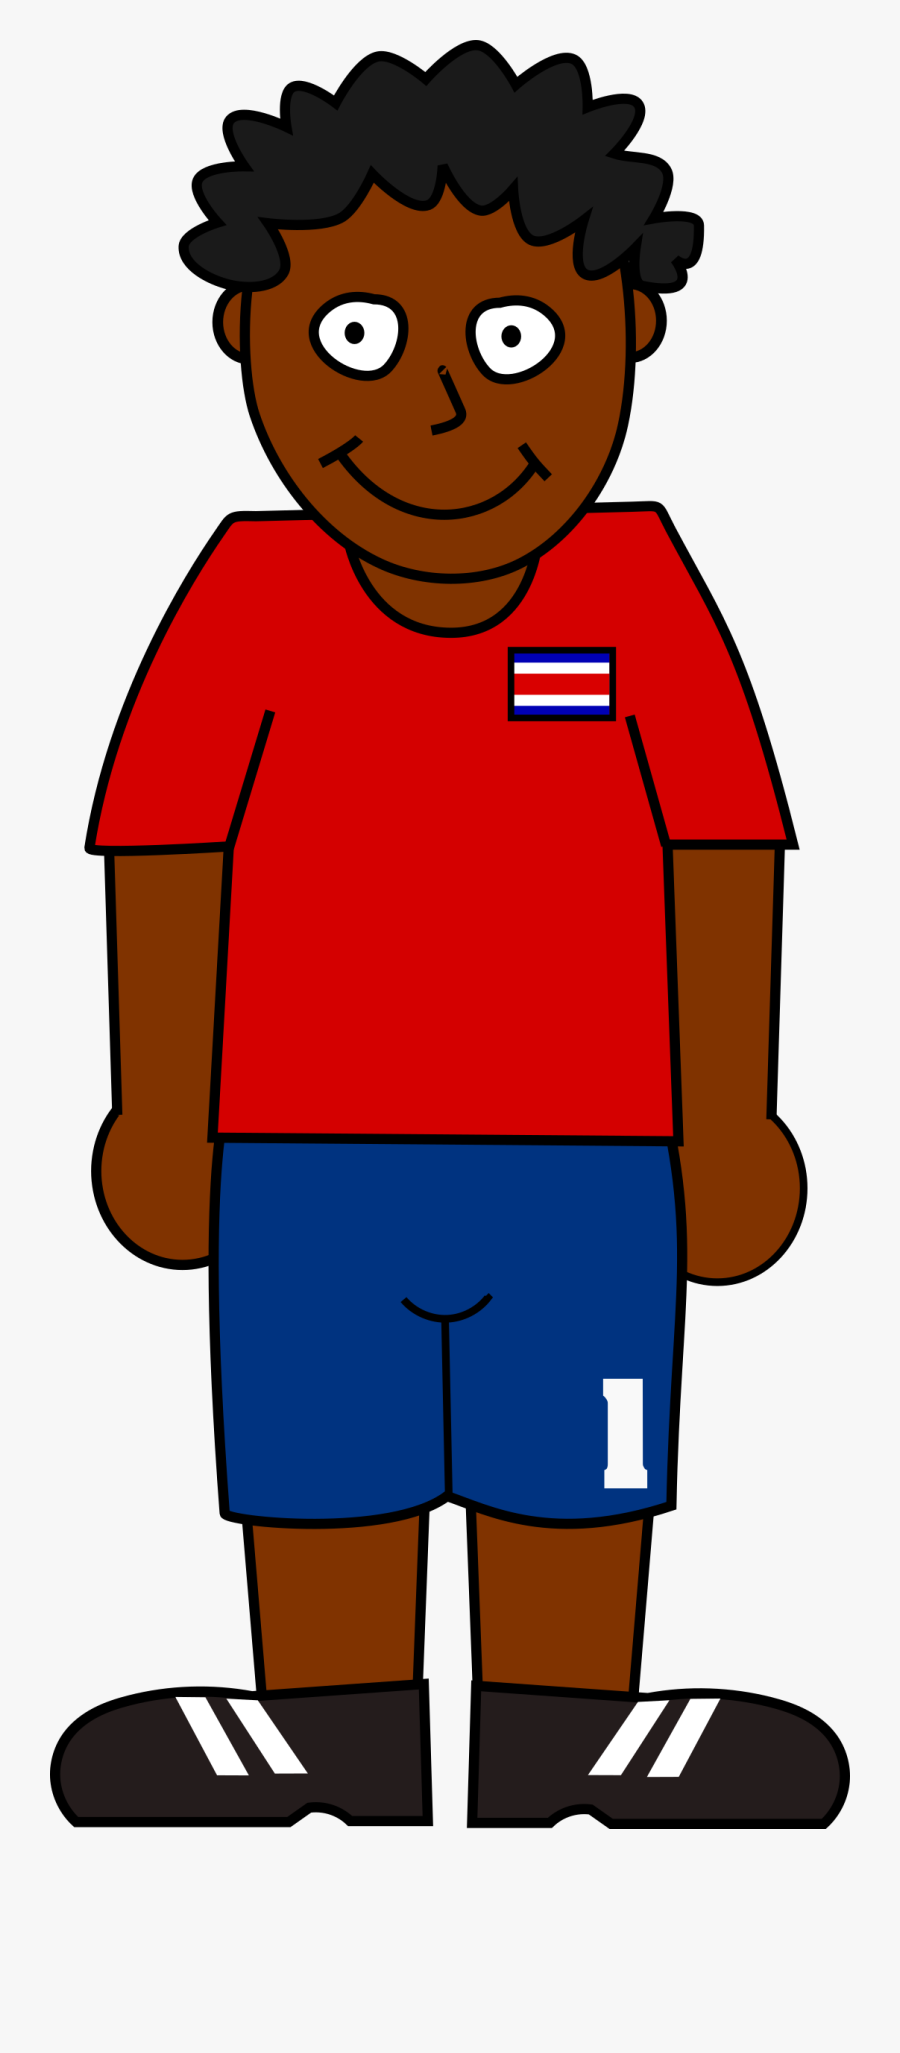 World Cup Soccer Player Clipart Png Transparent Png - World Cup Soccer Player Clipart Png, Transparent Clipart